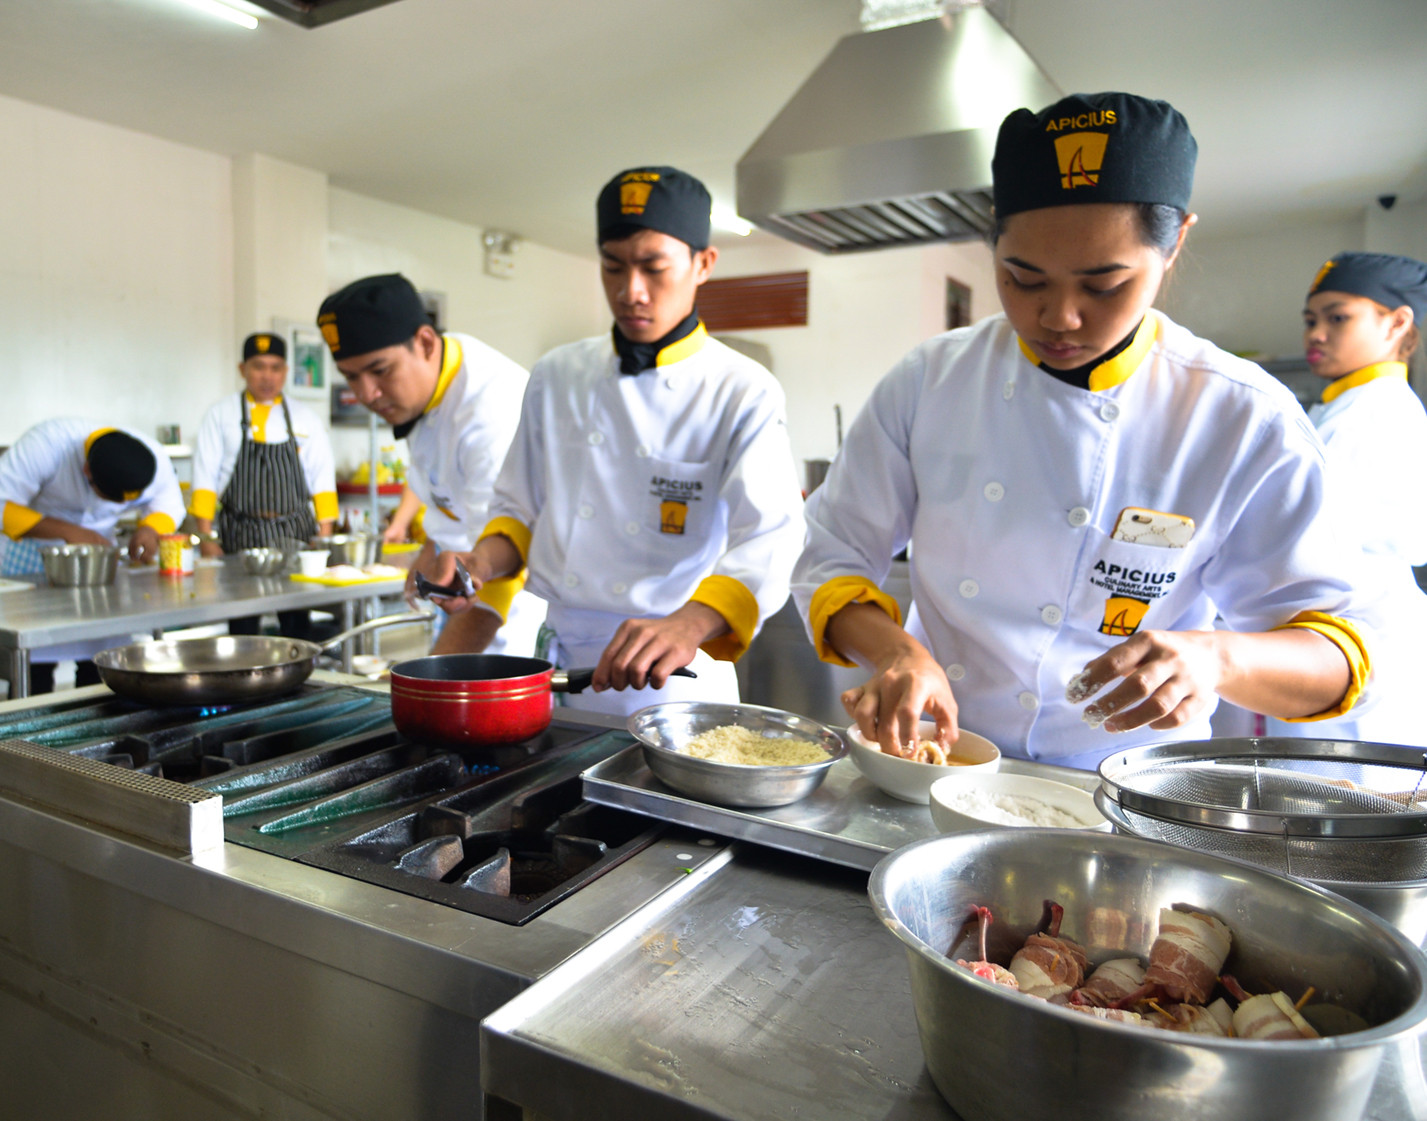 NC-II Certificate in Cookery (TESDA Course)